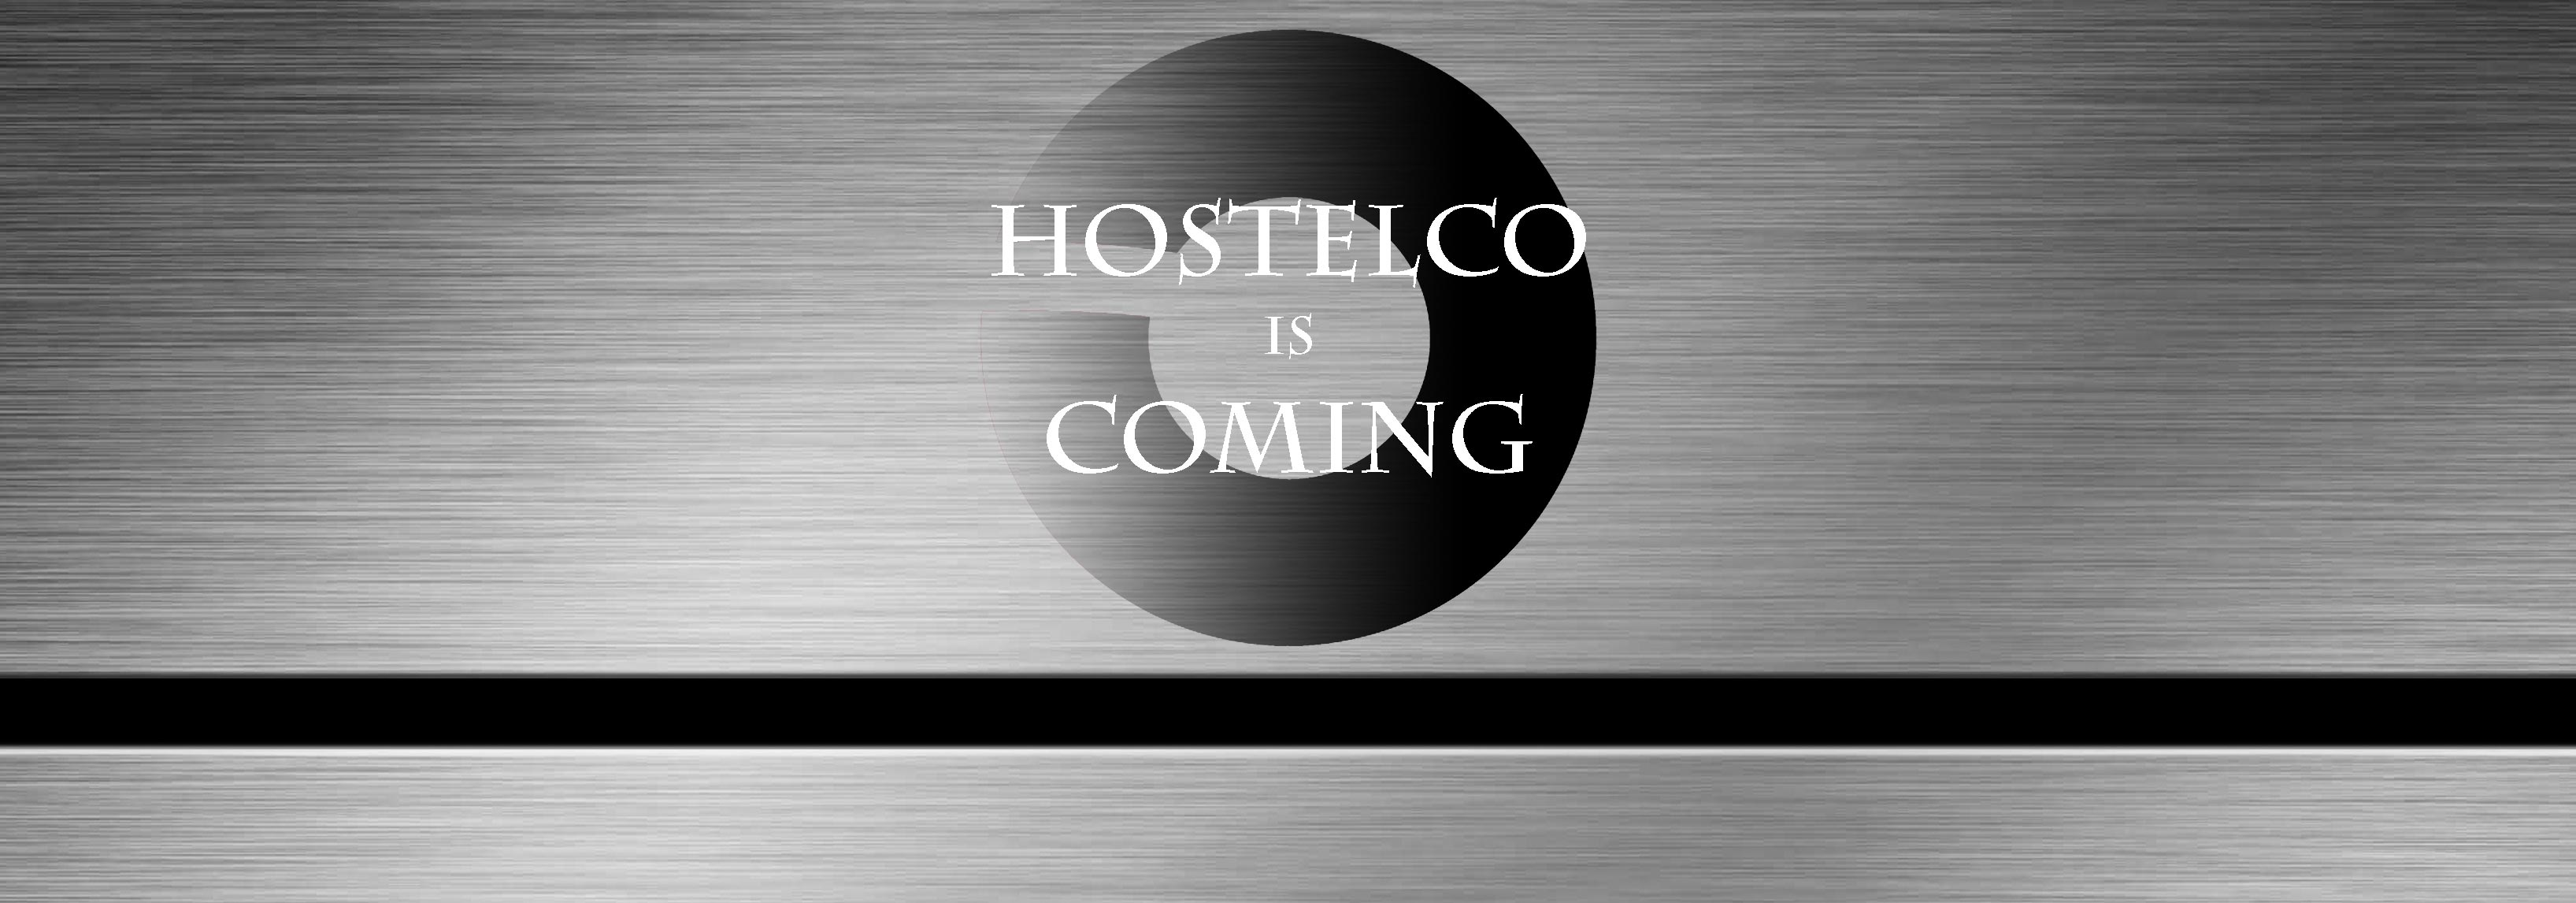 hostelco2016iscoming